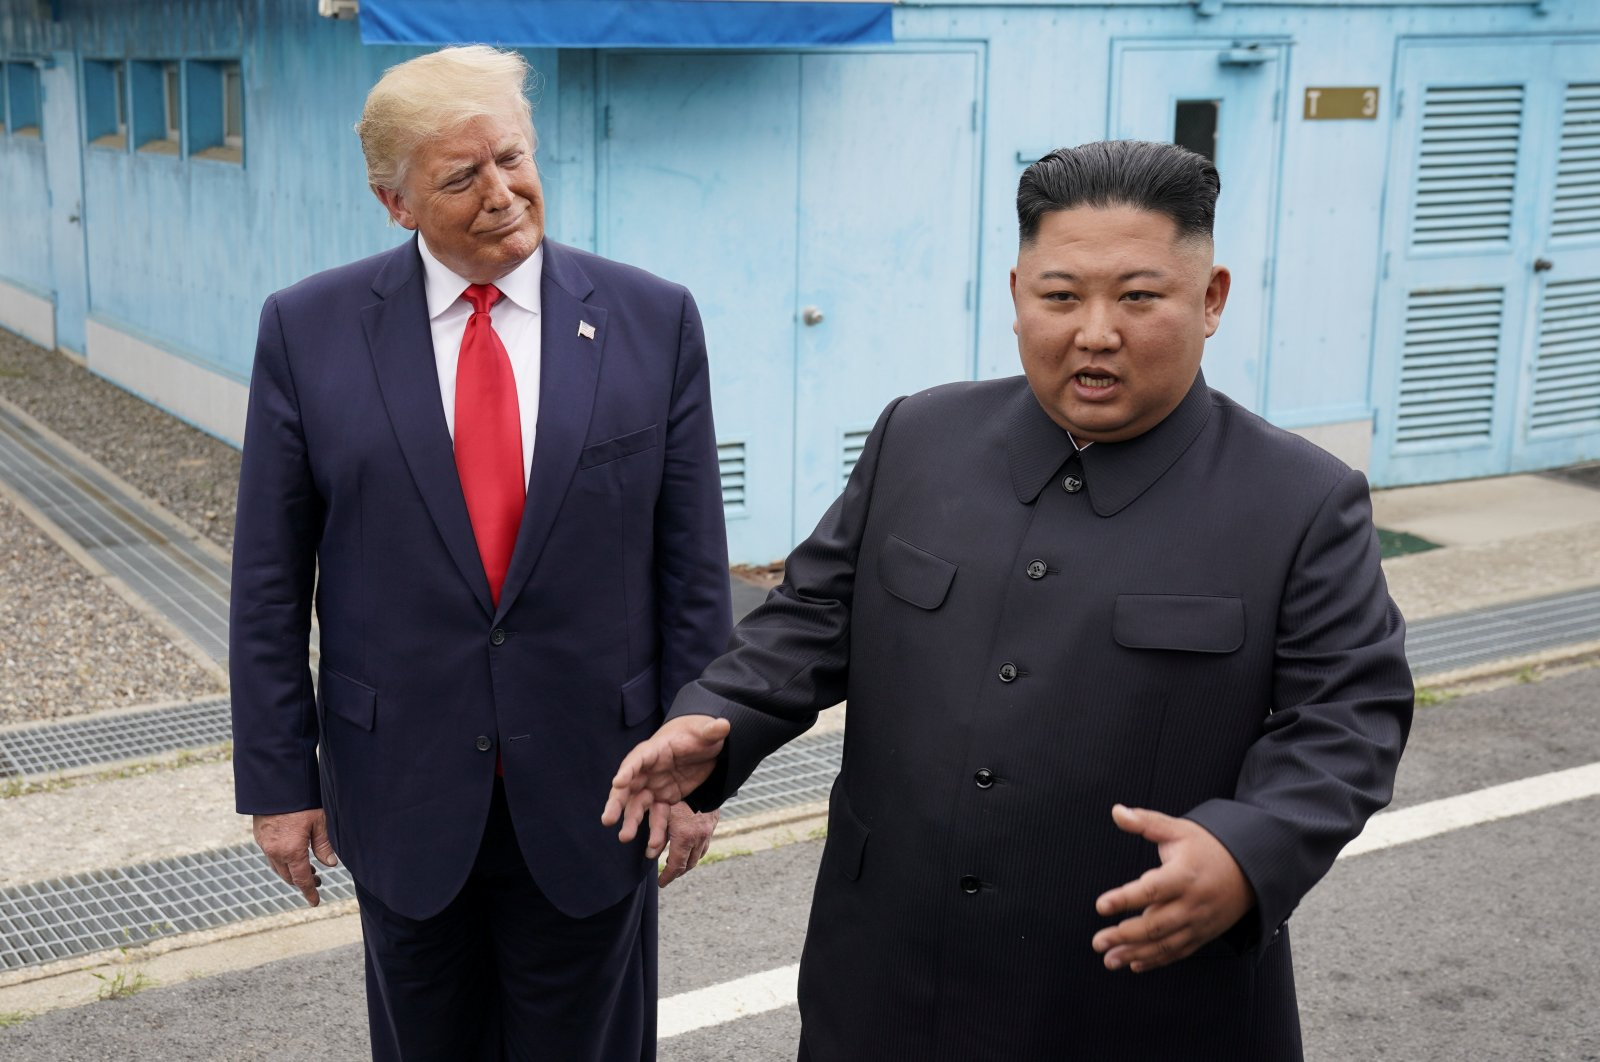 U.S. President Donald Trump meets with North Korean leader Kim Jong Un at the demilitarized zone separating the two Koreas, in Panmunjom, South Korea, June 30, 2019. (Reuters File Photo)